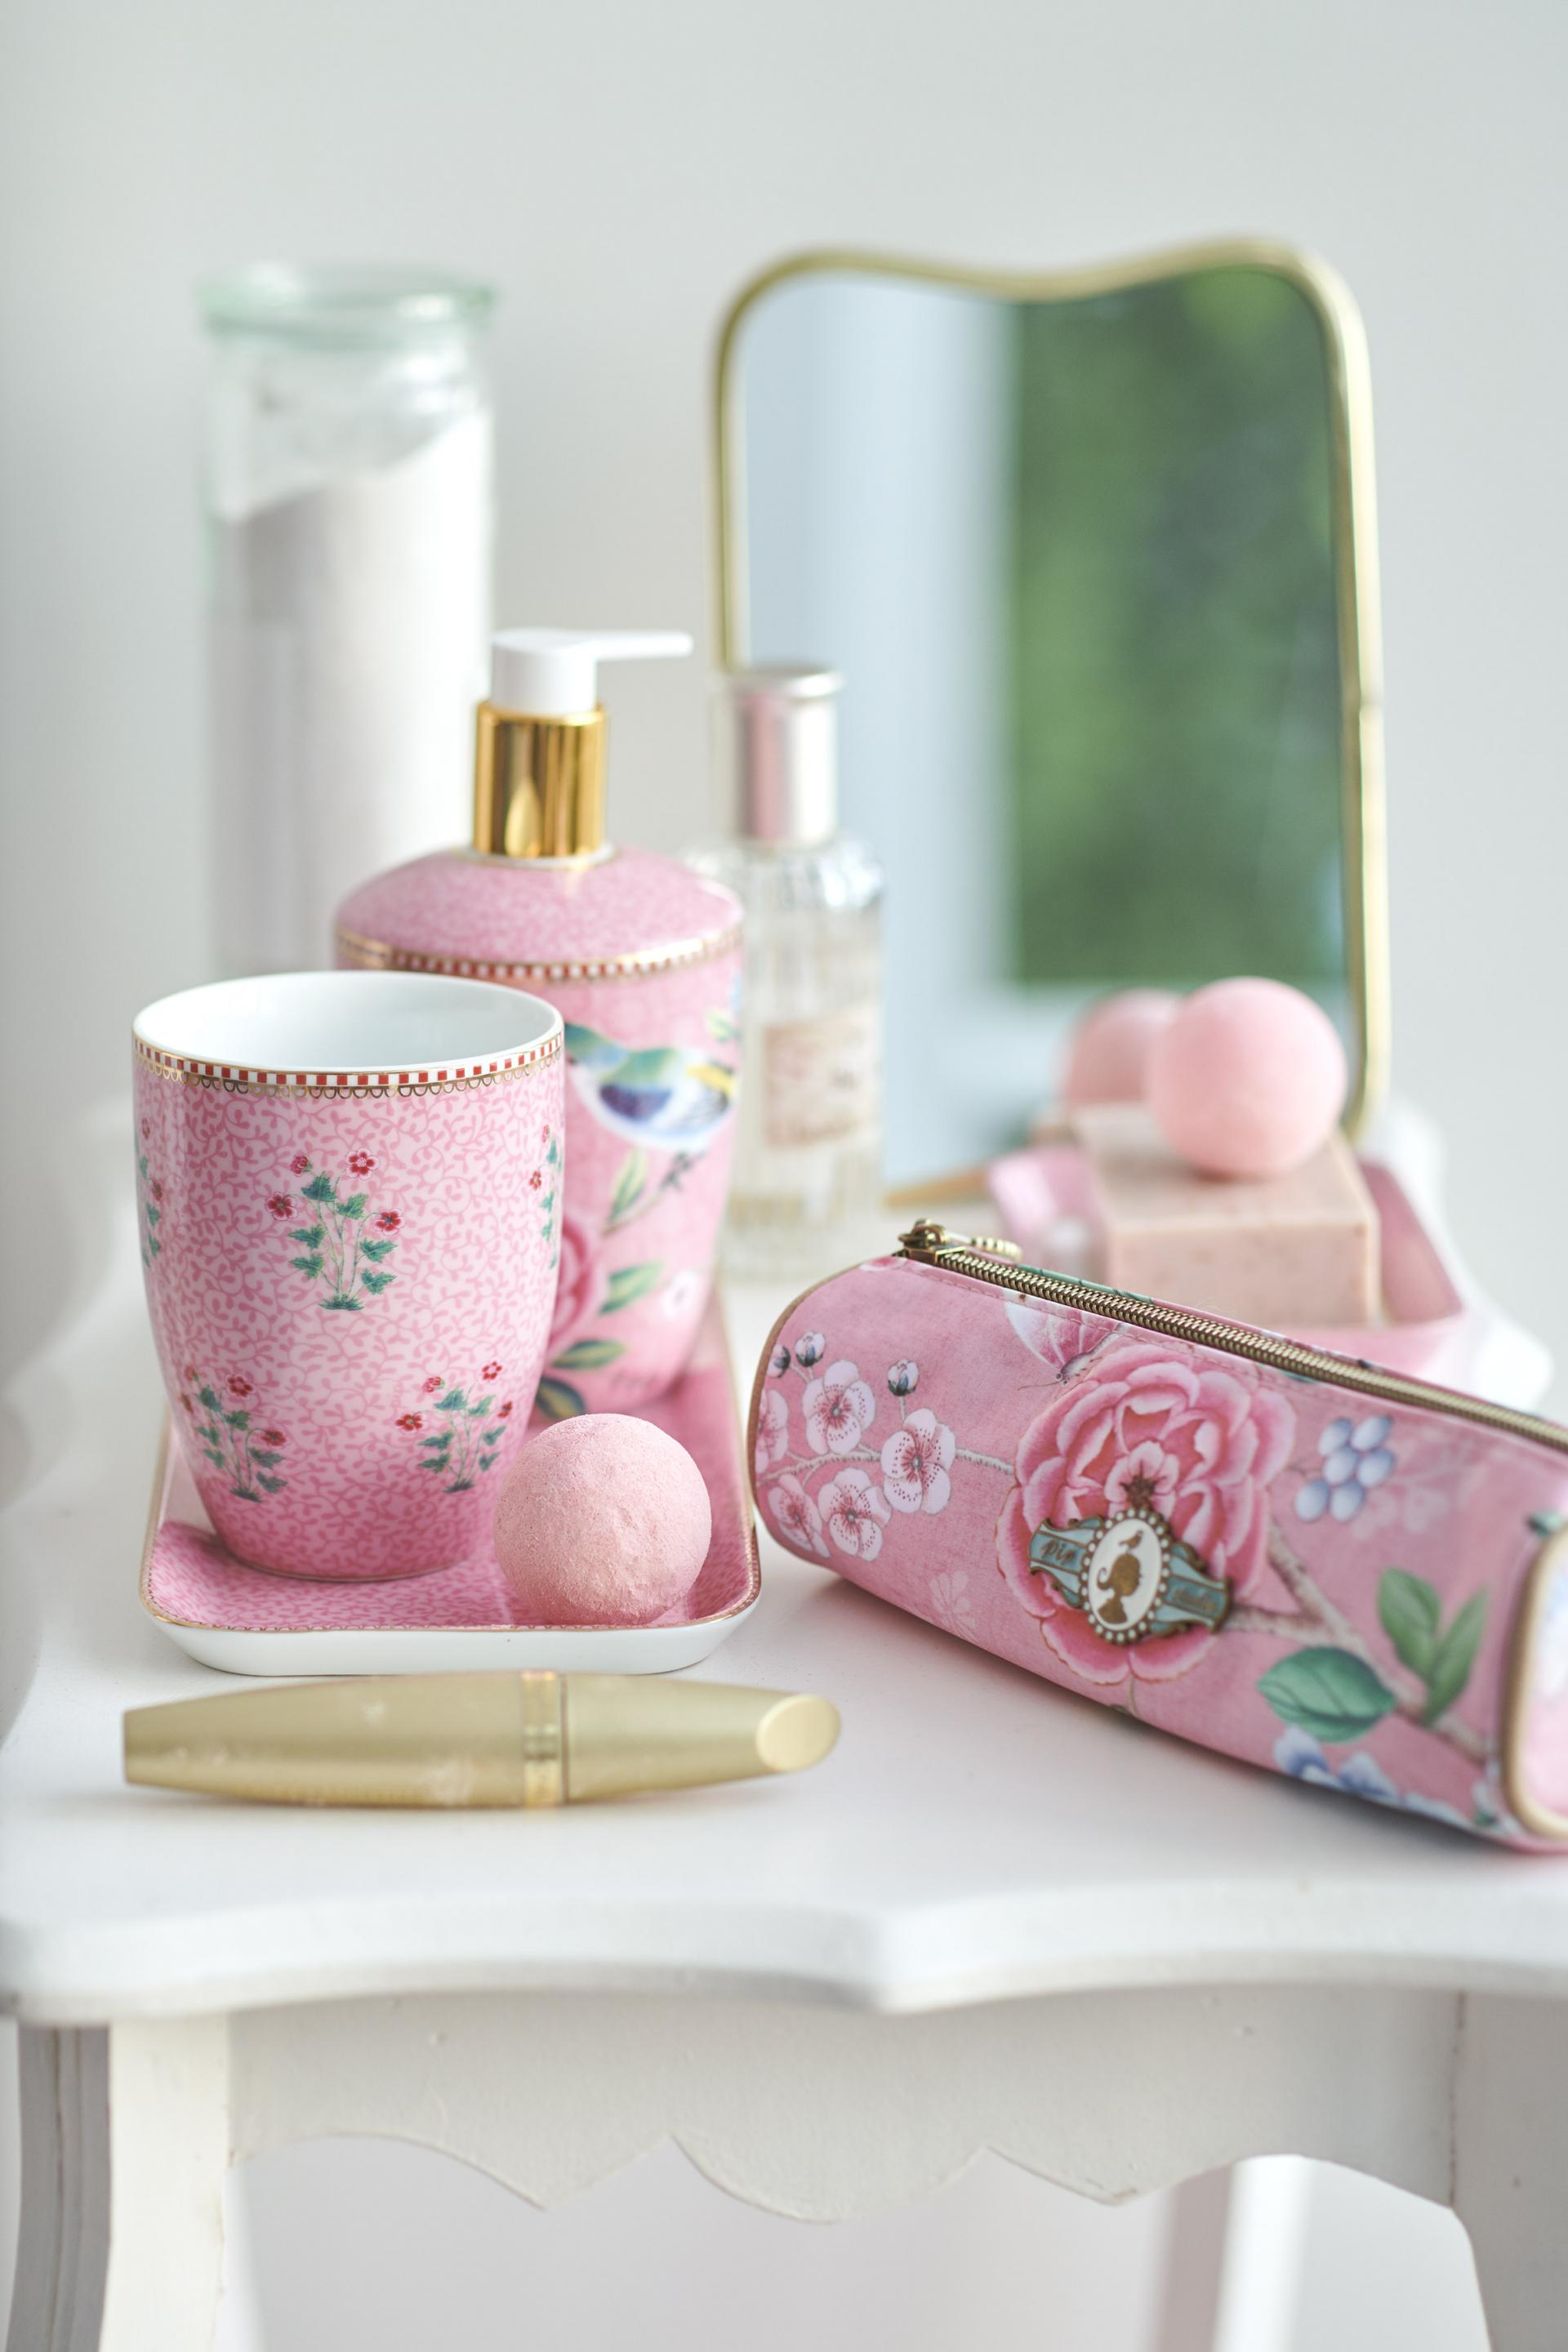 Pip Studio Good morning Floral Pink